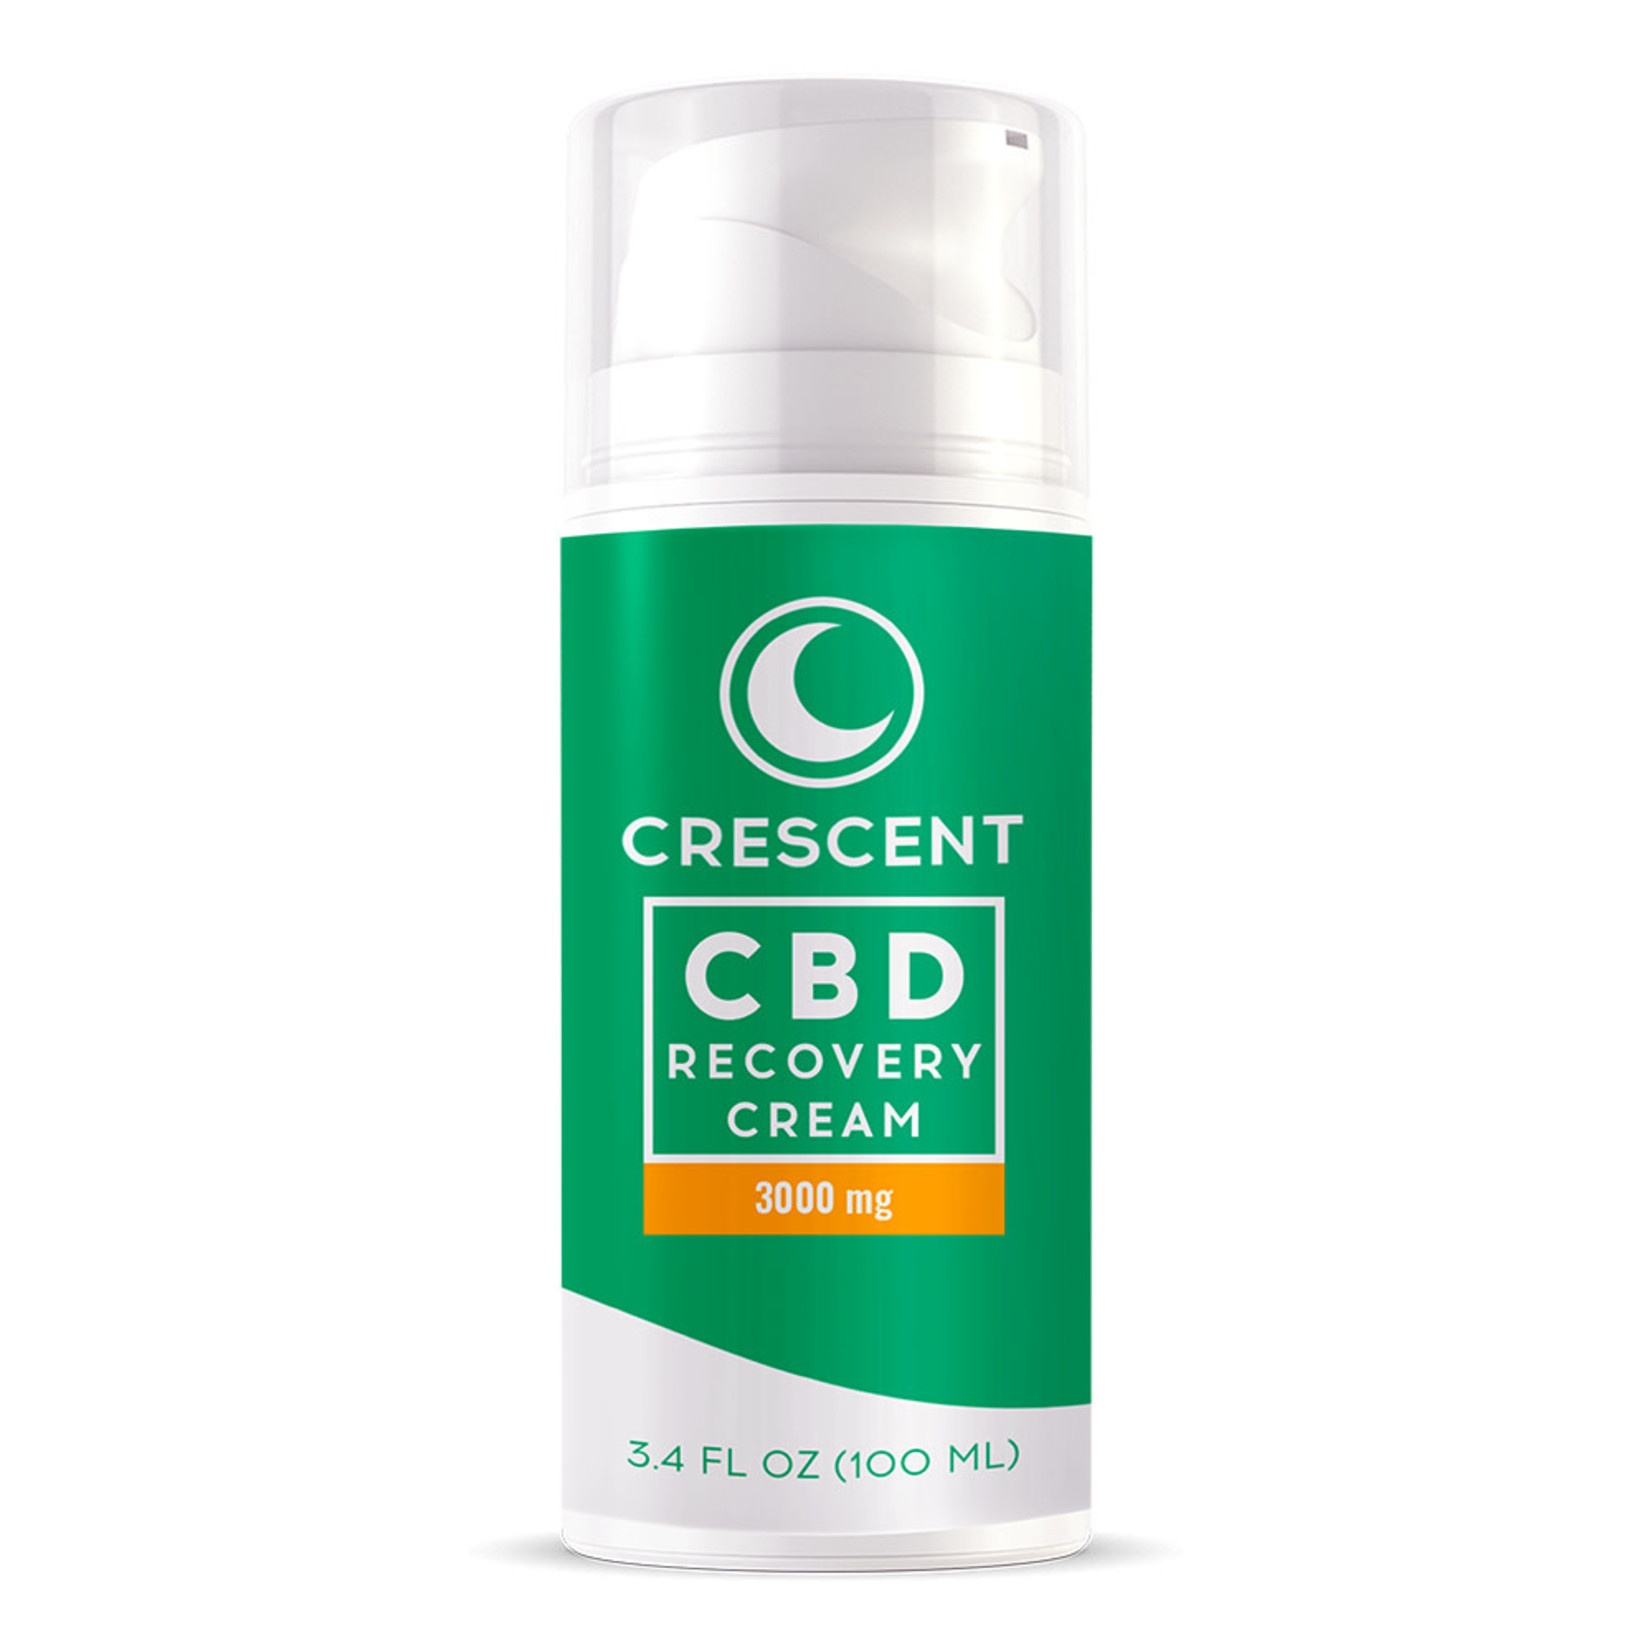 Crescent Canna CBD Topical Pain Recovery Creme 3000mg 3.4oz pump